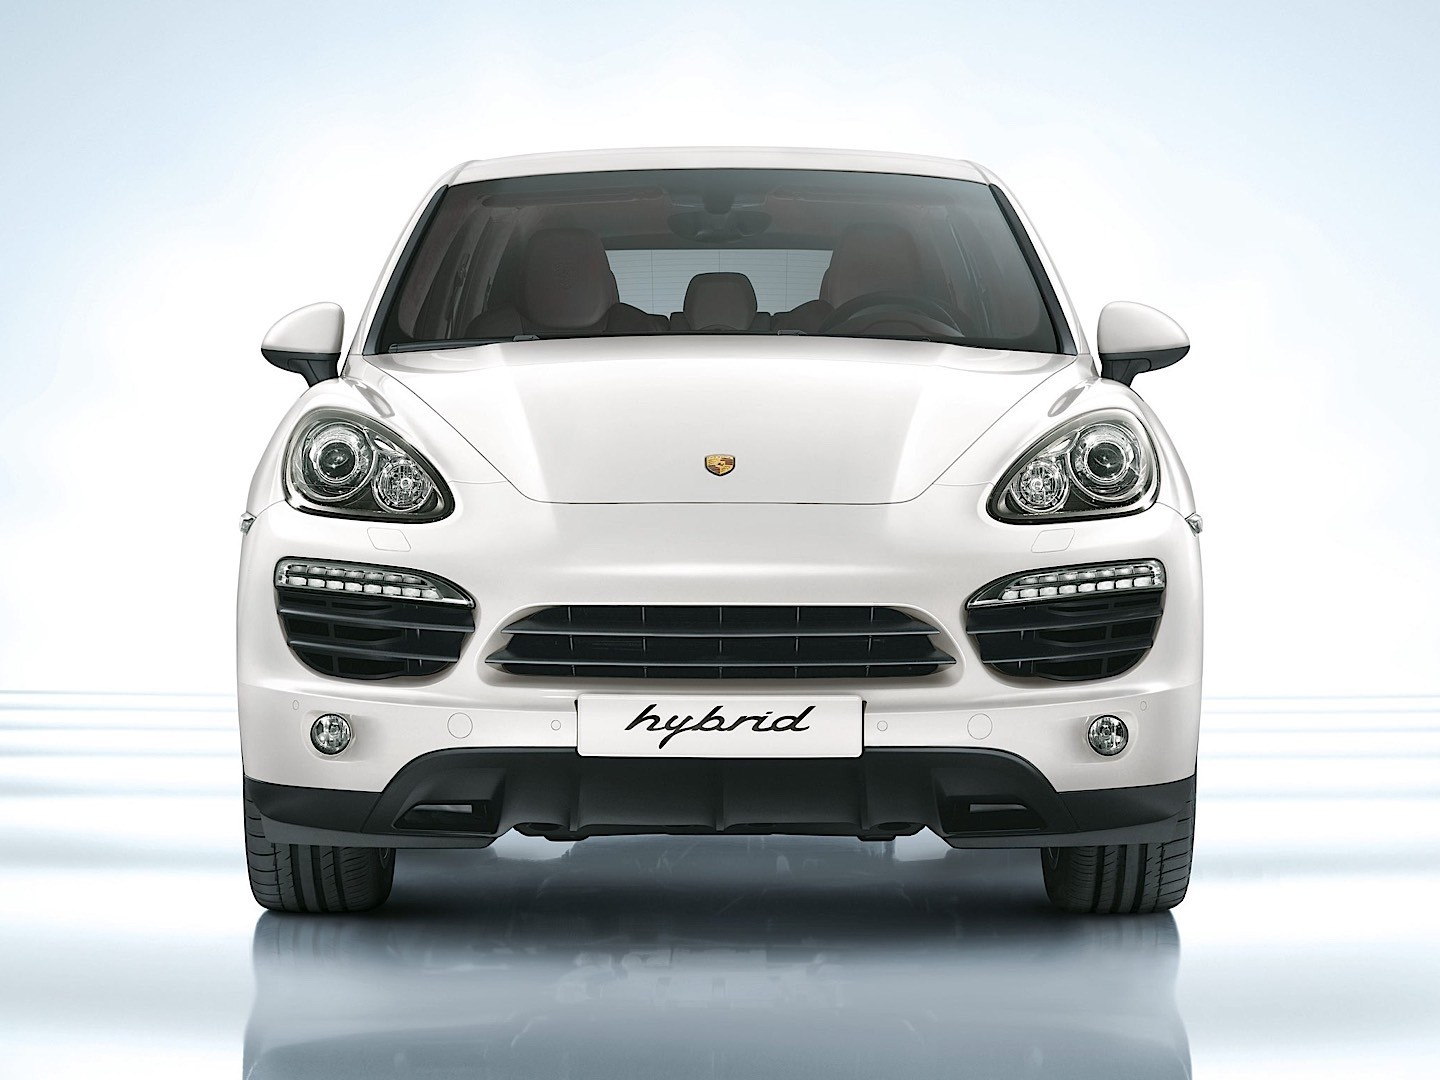 porsche cayenne s hybrid specs 2010 2011 2012 2013. Black Bedroom Furniture Sets. Home Design Ideas